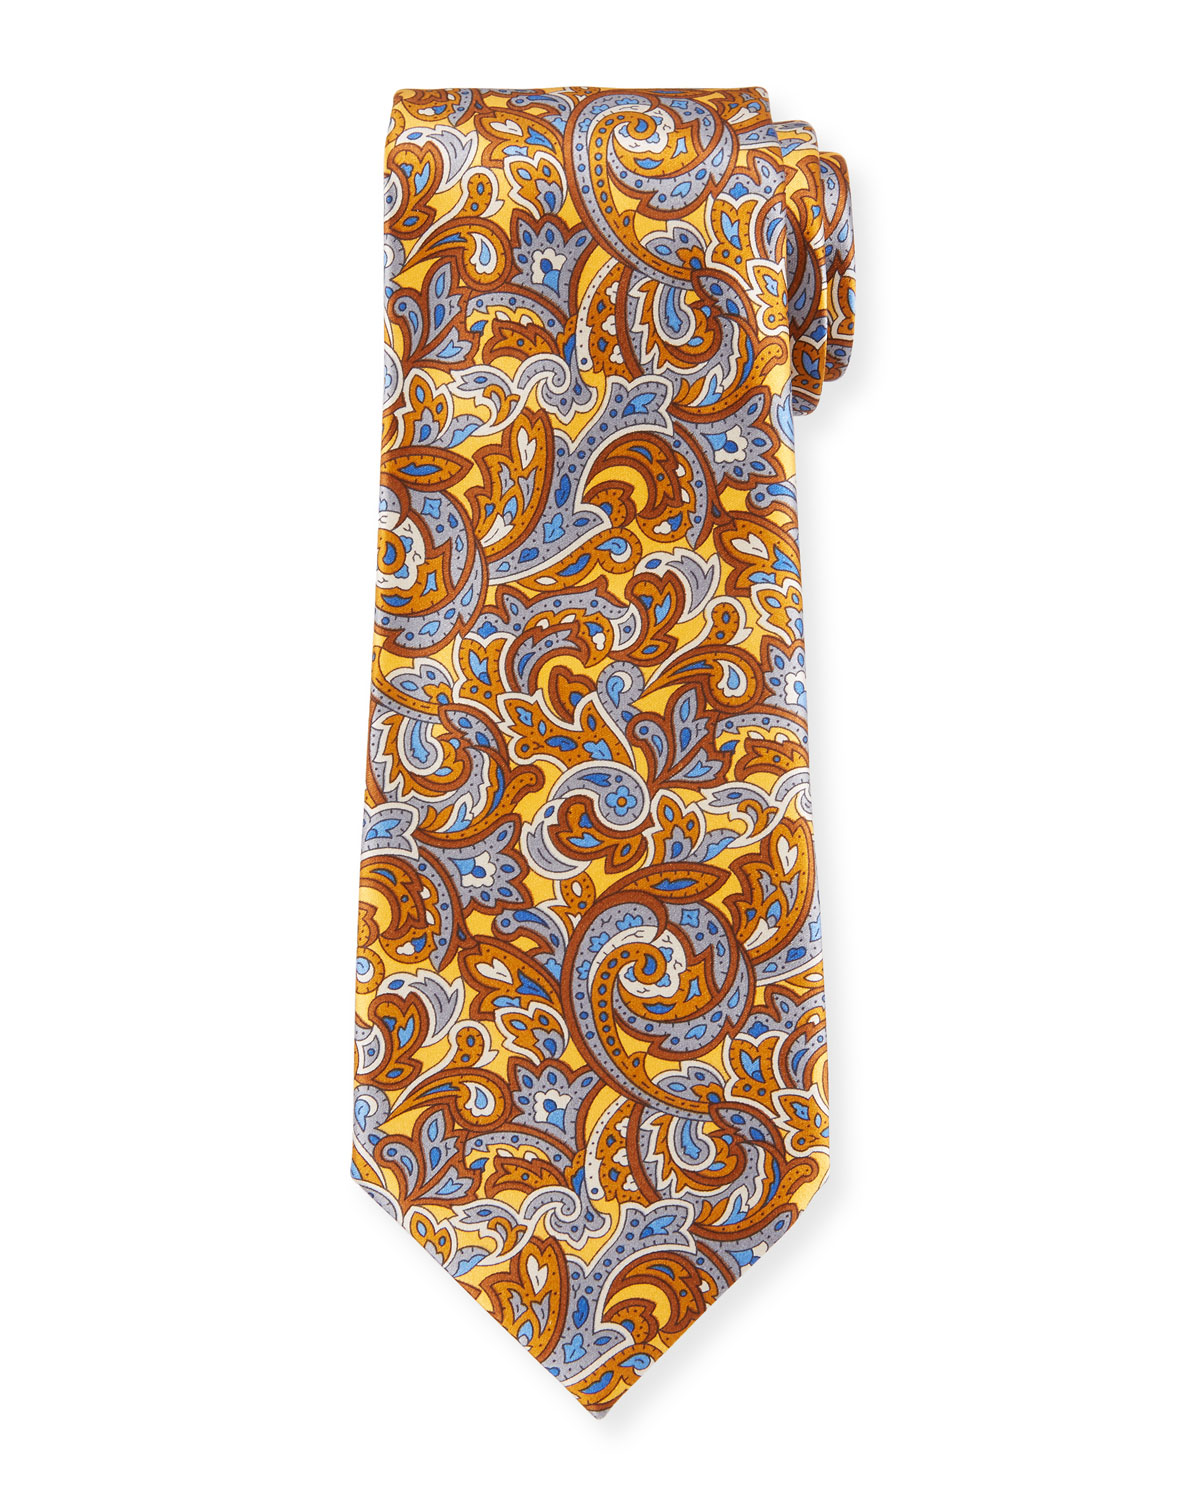 Ermenegildo Zegna Men's Medium-Scale Paisley Tie, Yellow